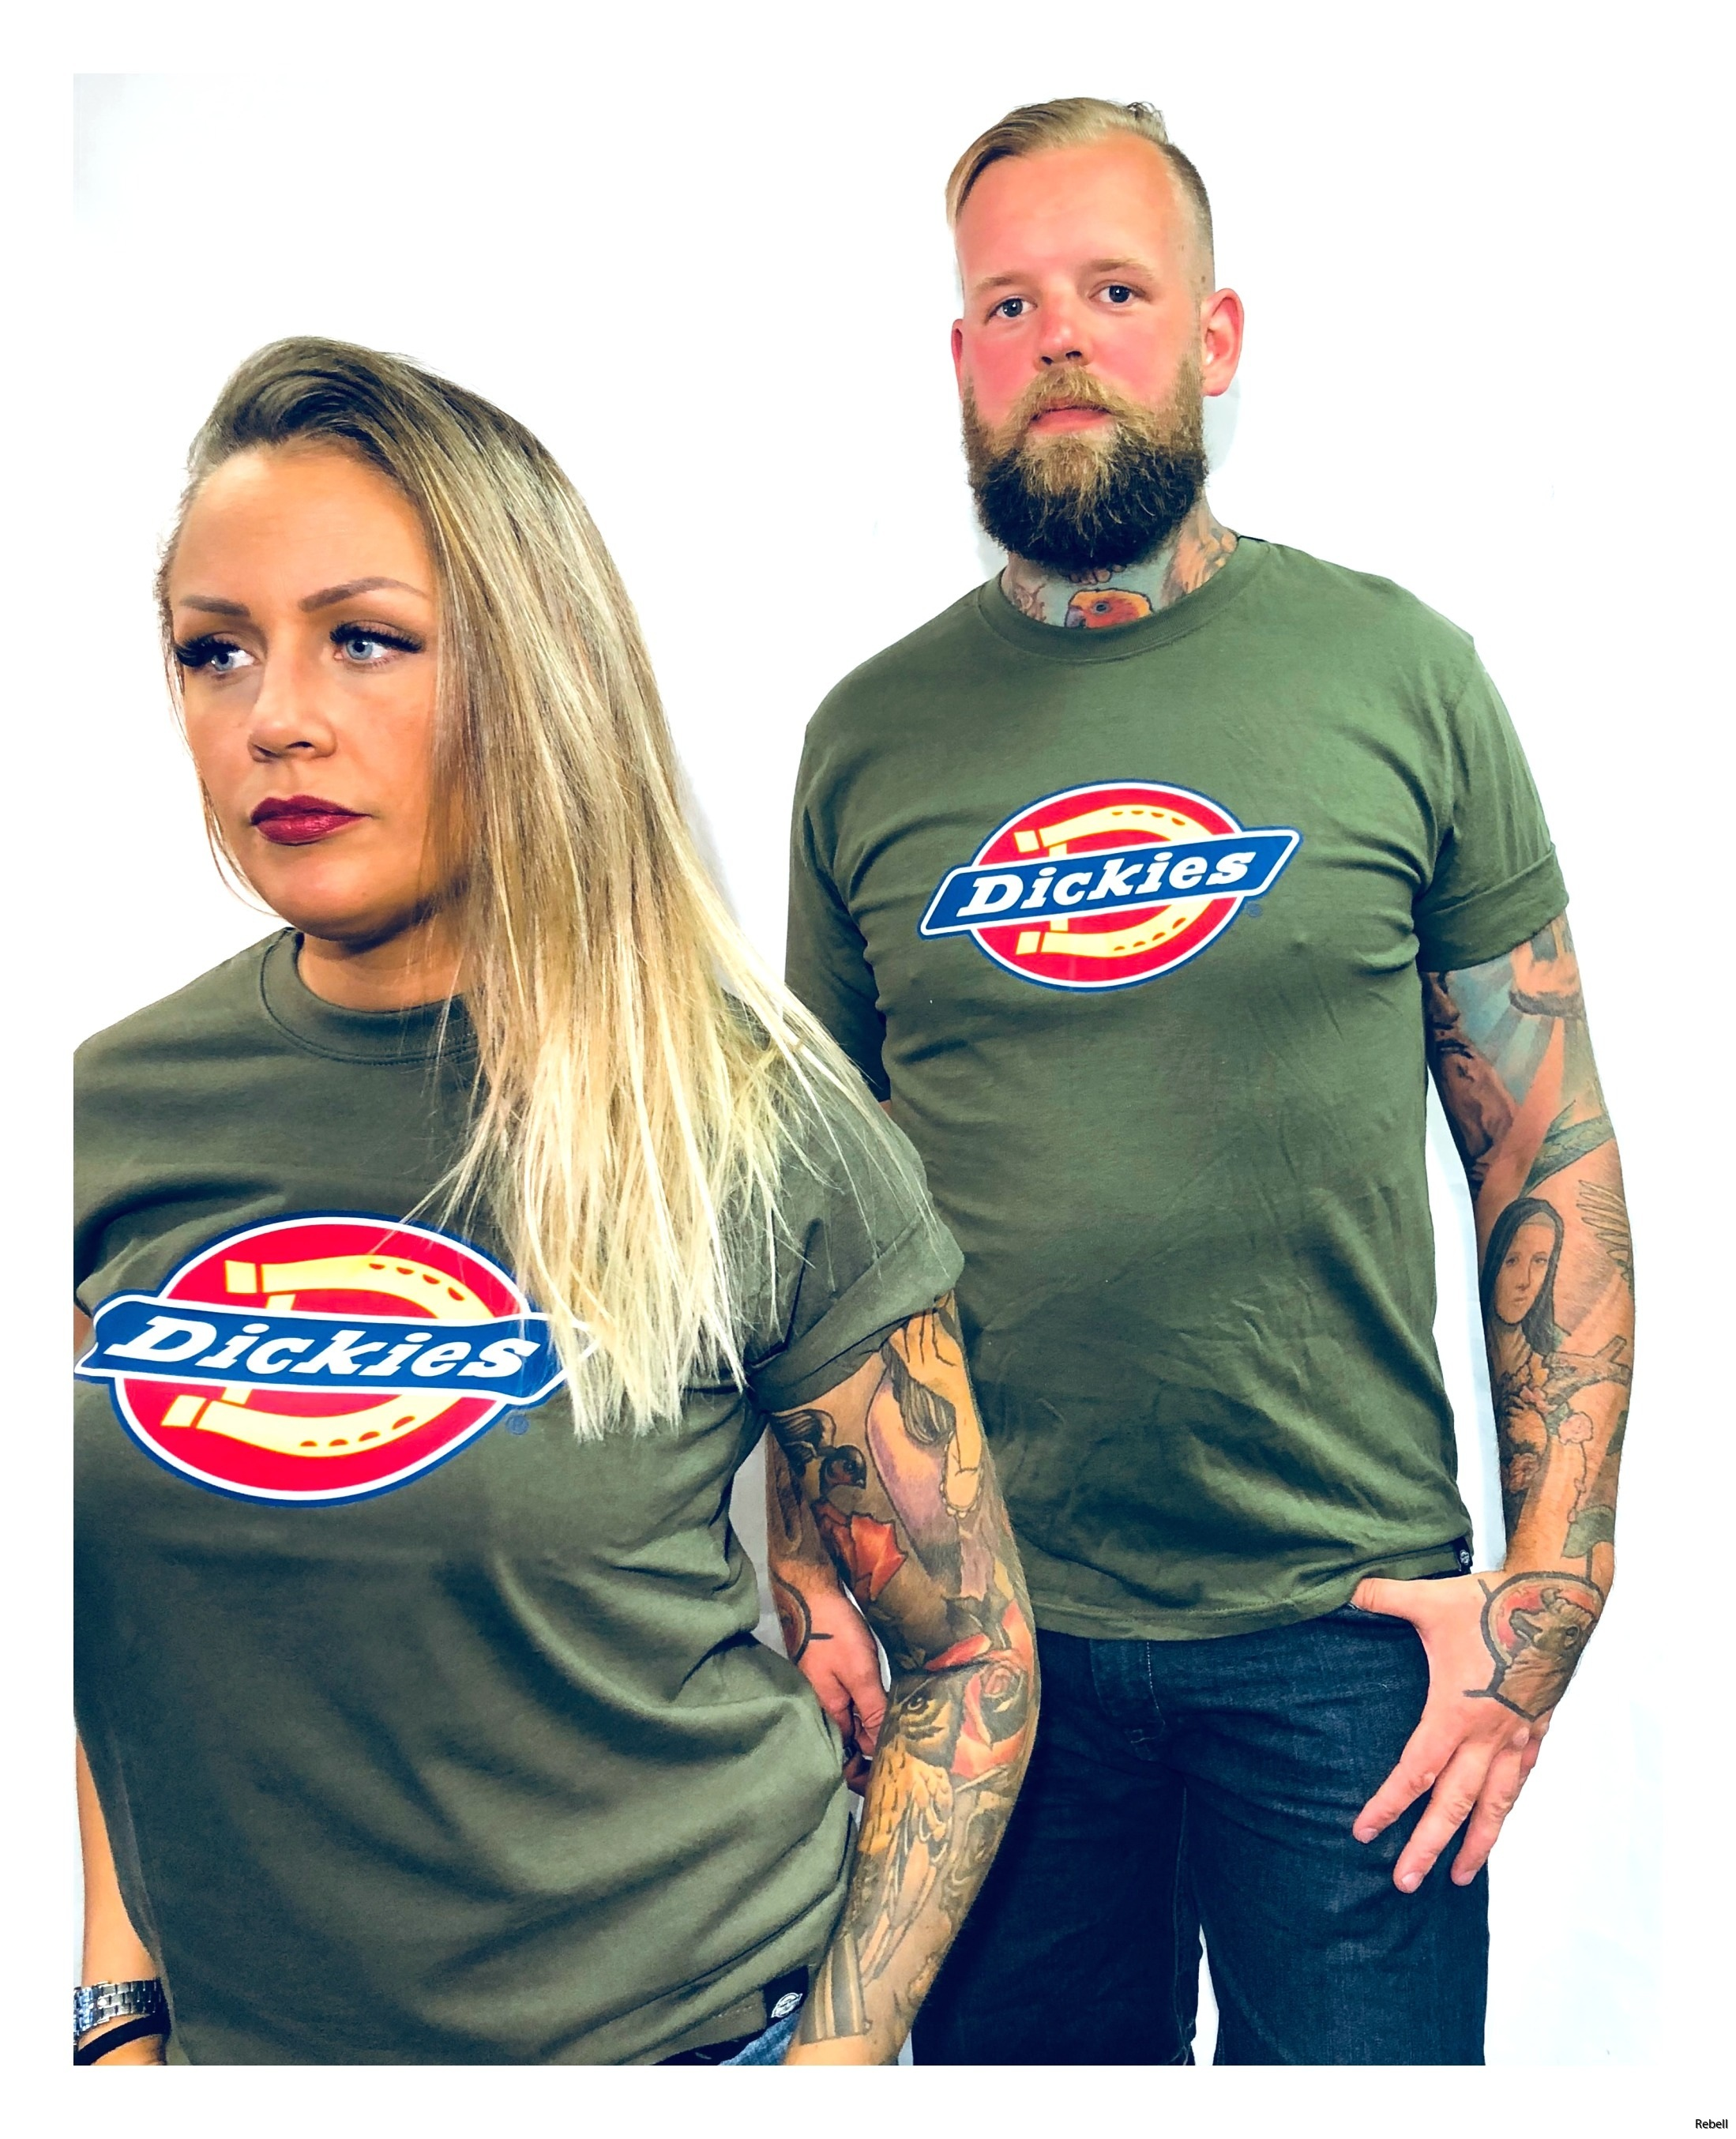 Dickies tshirt olive olive green rebellclothes rebell rebellskövde rebell dickiesskövde bas horseshoe unisex